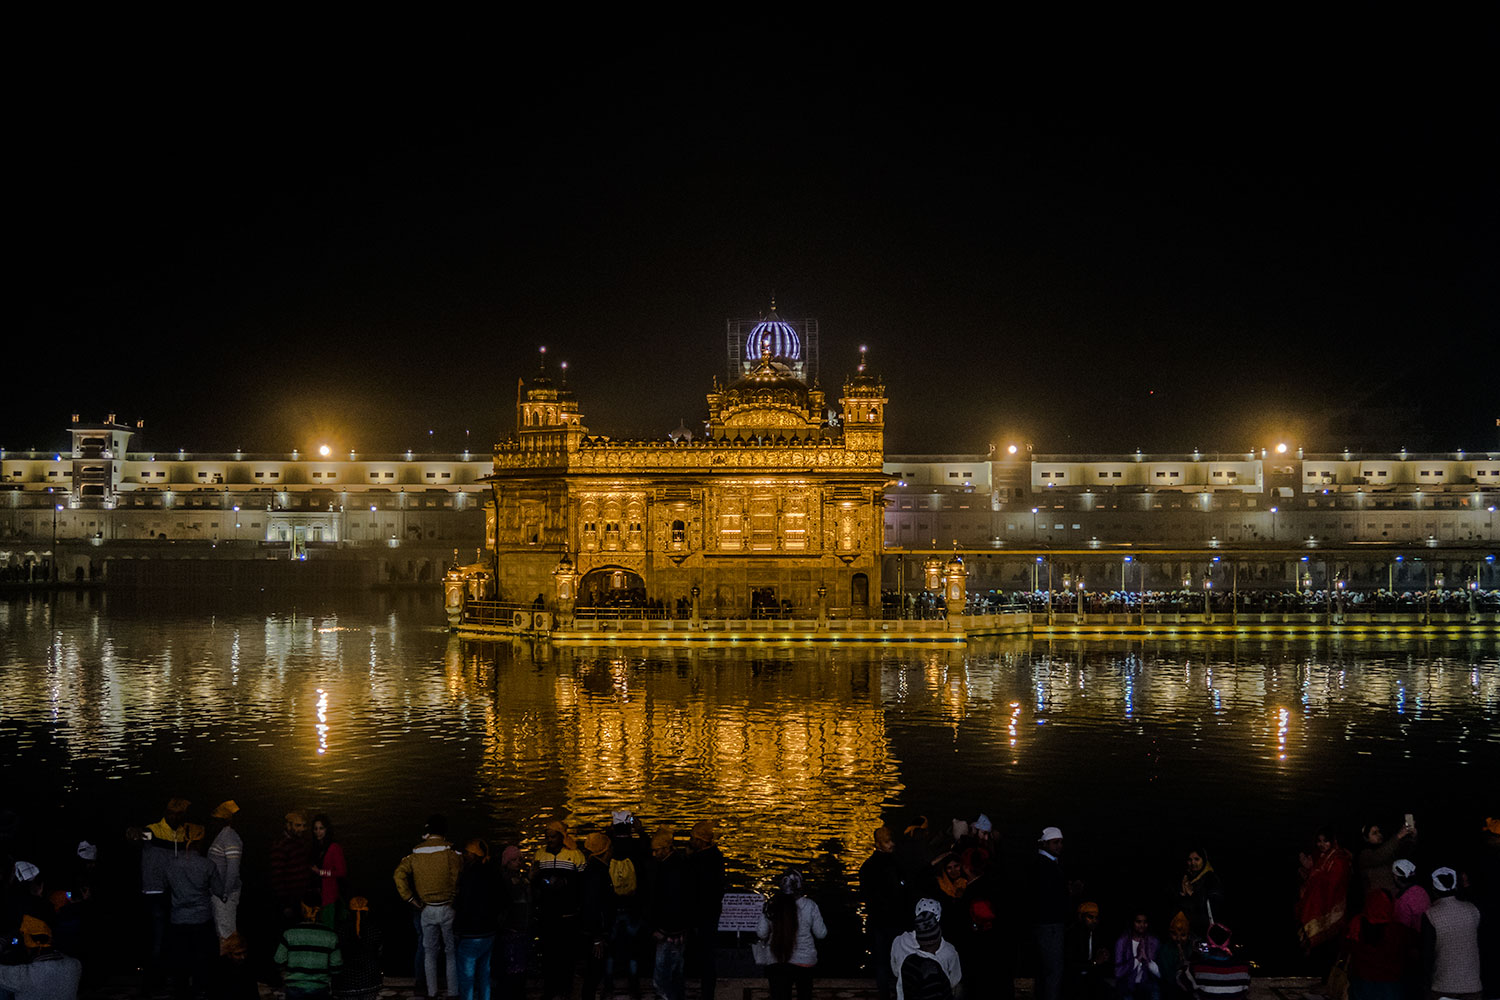 Golden Temple, Things to do and Places to Visit in Amritsar | Happymind Travels